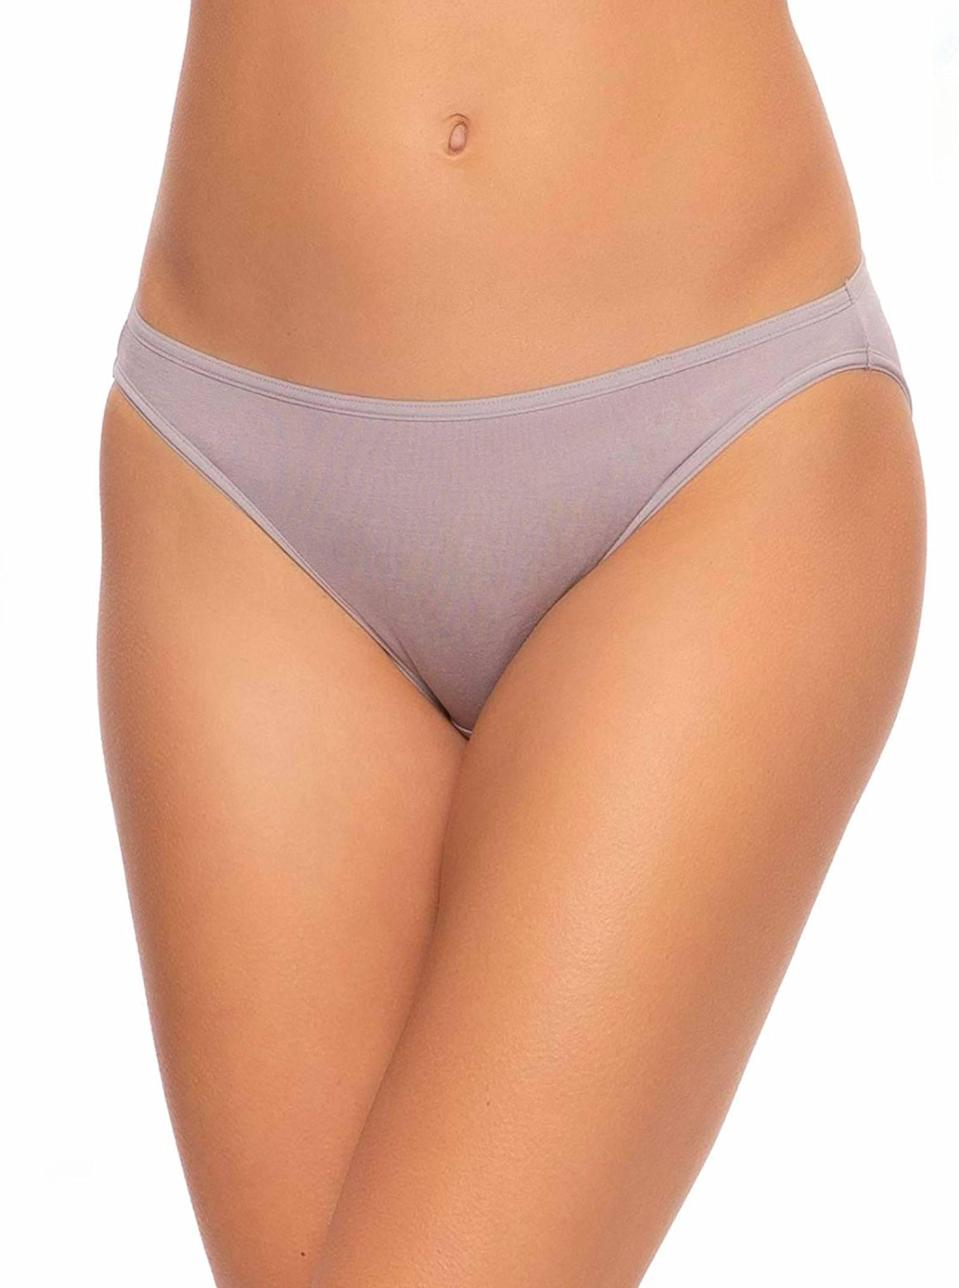 """The kind of undies you slip on without having to second-guess your look of the day. $12, Amazon. <a href=""""https://www.amazon.com/Felina-Smooth-Bikini-Panty-Medium/dp/B07ZTTYP3B/ref="""" rel=""""nofollow noopener"""" target=""""_blank"""" data-ylk=""""slk:Get it now!"""" class=""""link rapid-noclick-resp"""">Get it now!</a>"""